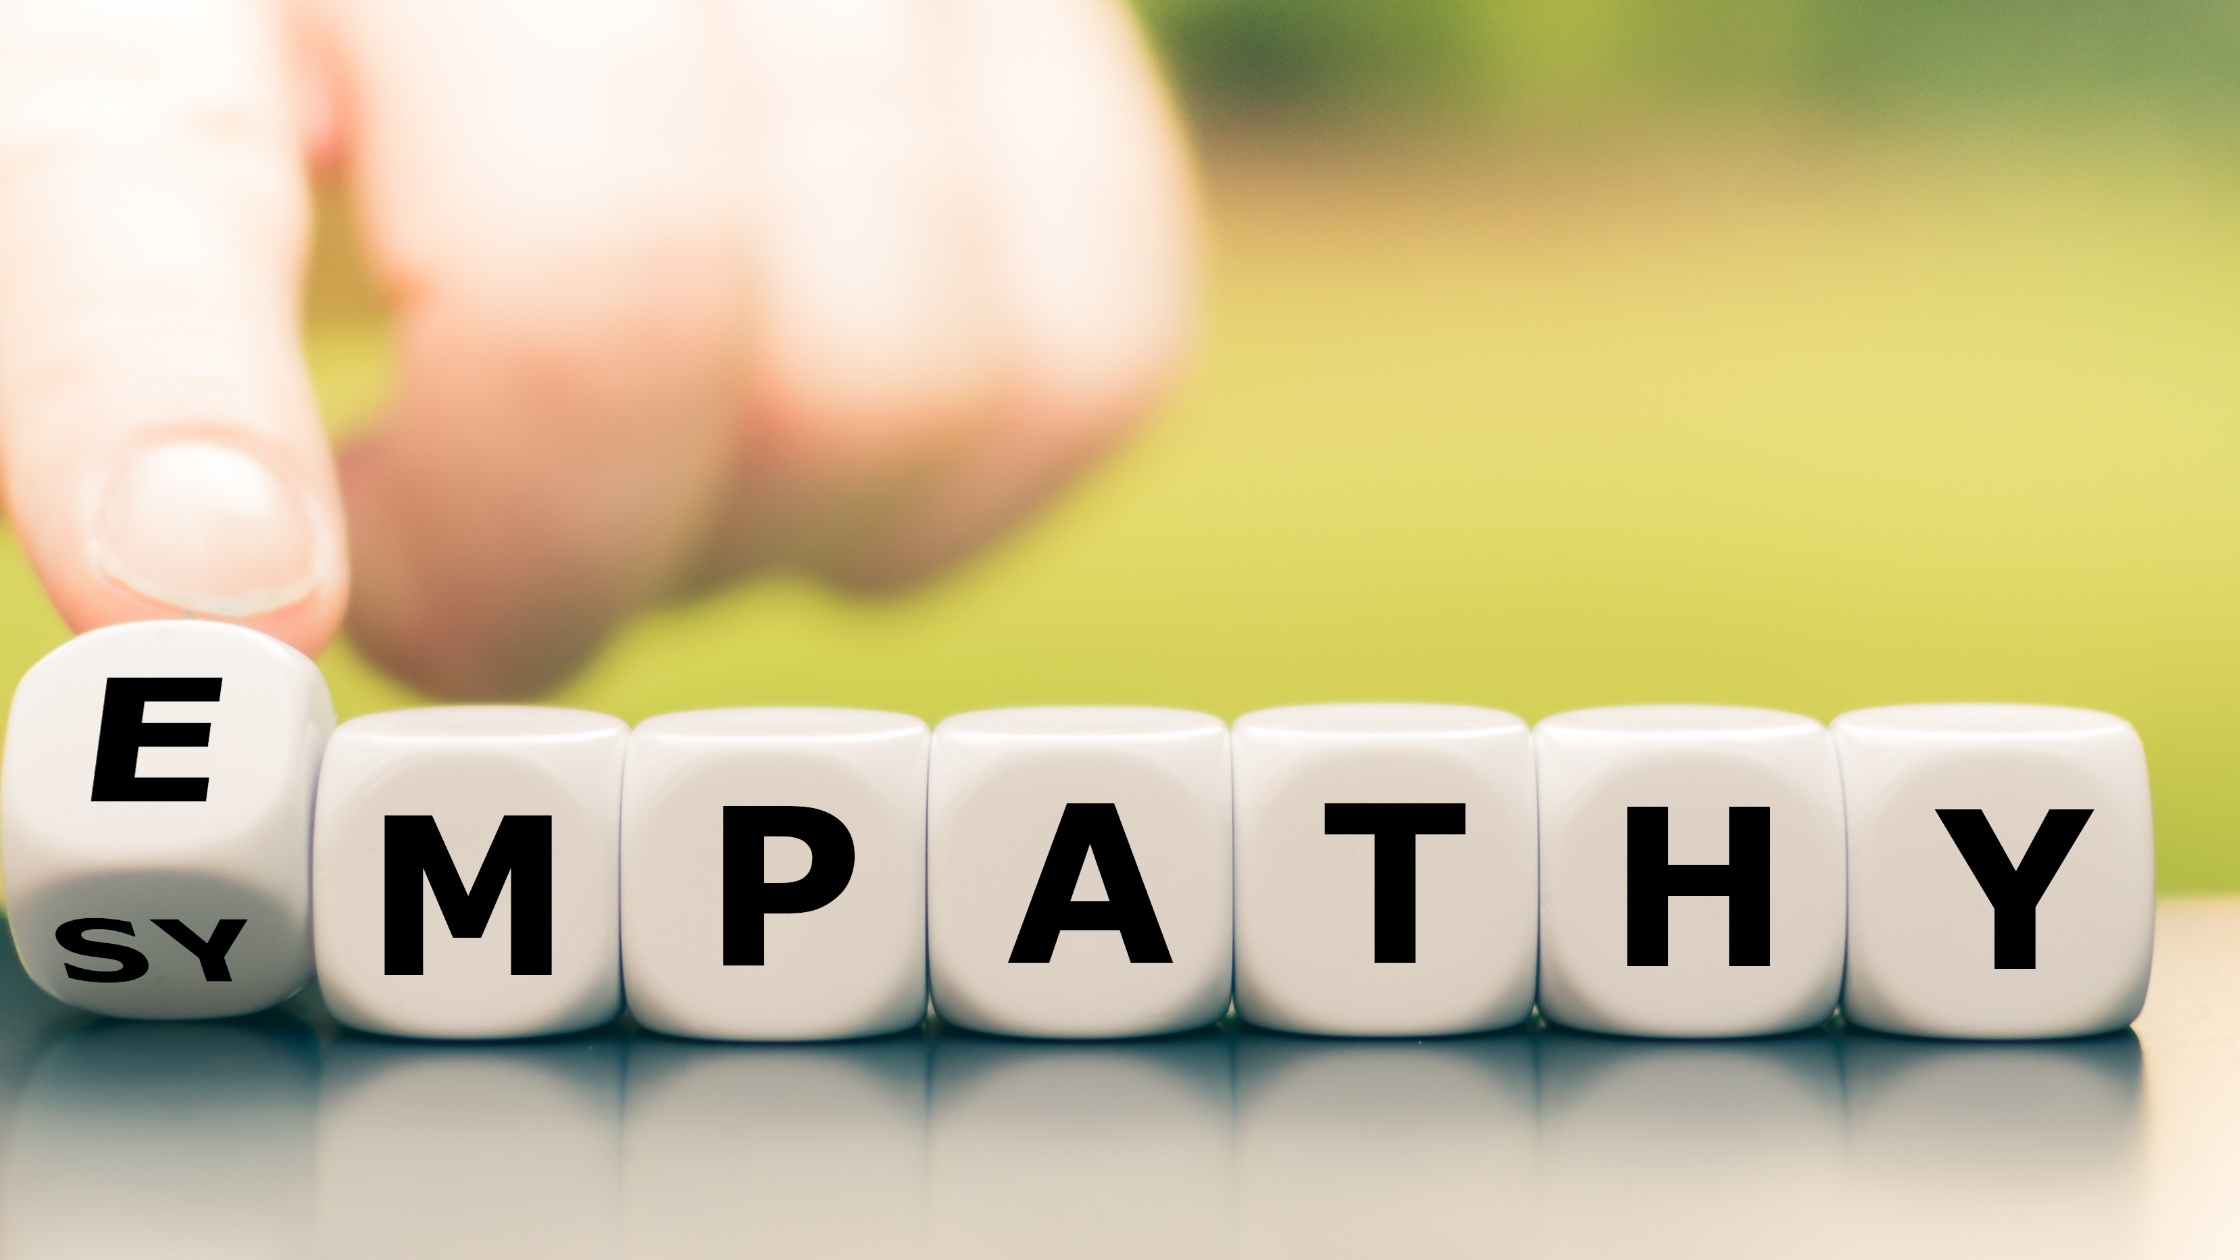 5 Ways To Promote Empathy During A Crisis